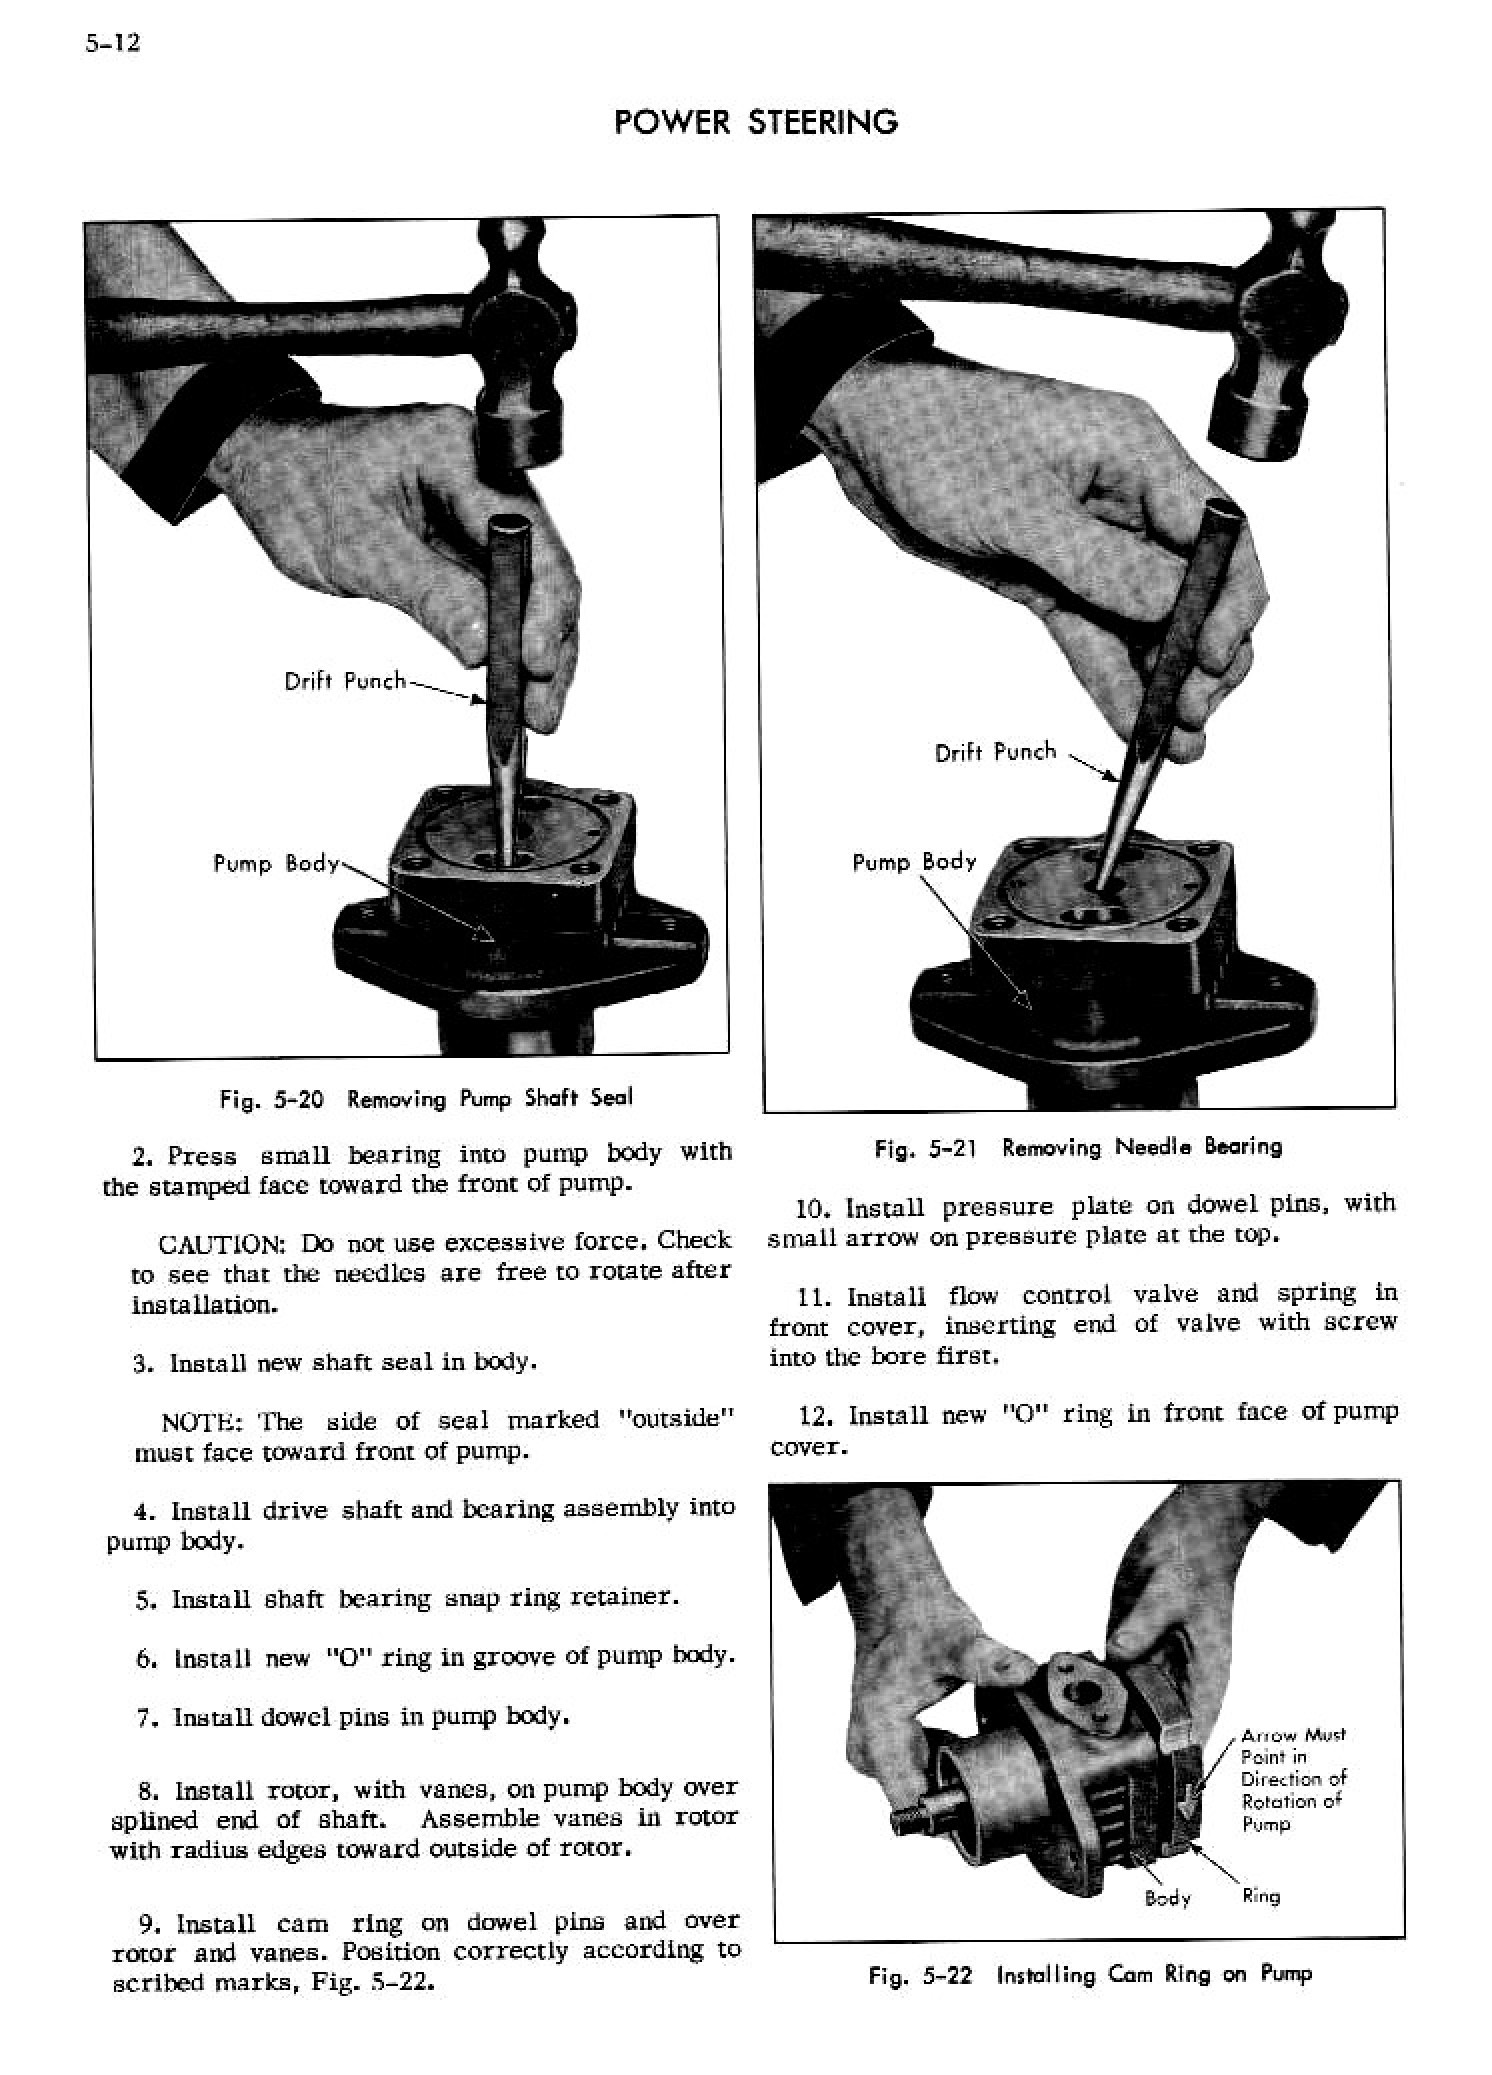 1956 Cadillac Shop Manual- Power Steering Page 12 of 26